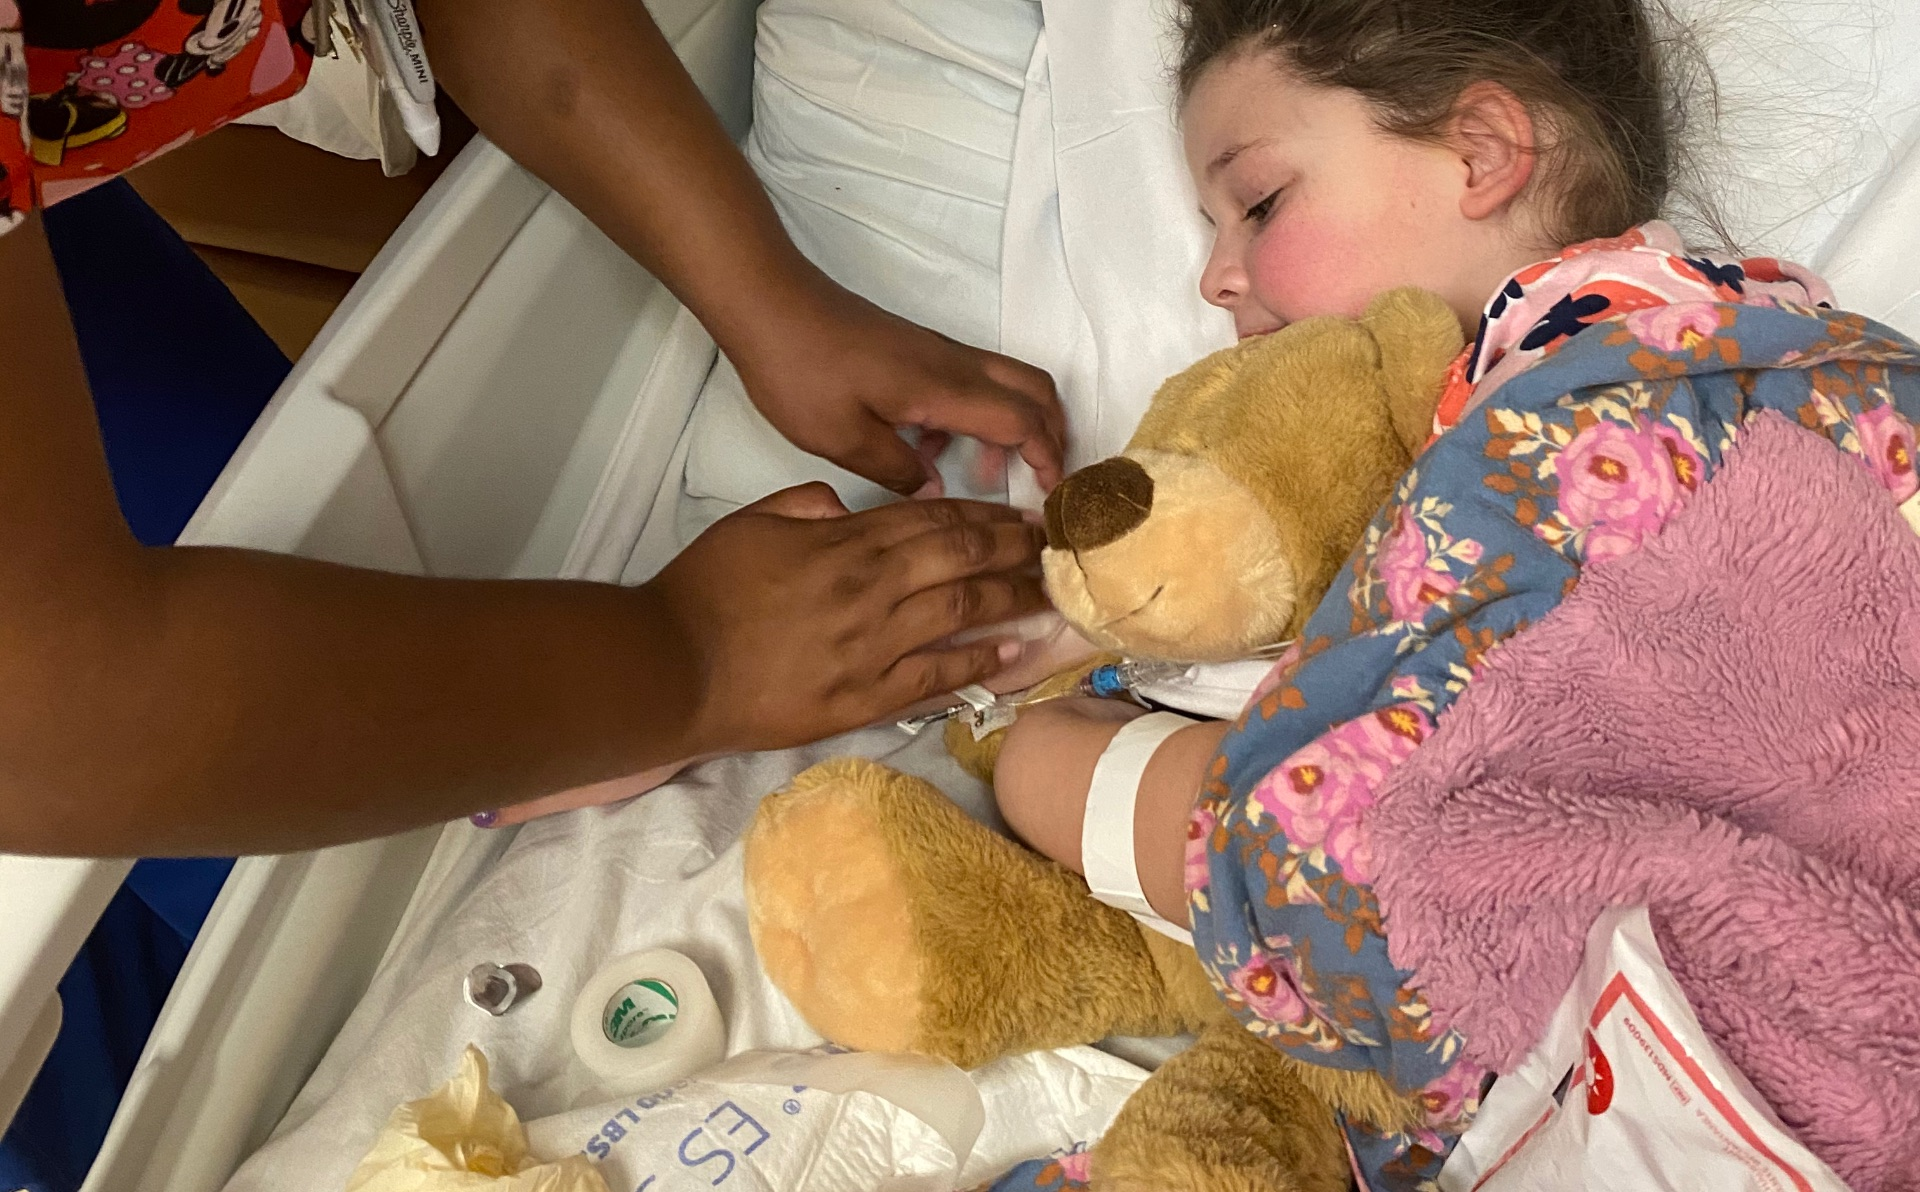 Henley and Donnie snuggle in a hospital bed covered by blankets as a nurse checks on Henley's IV.